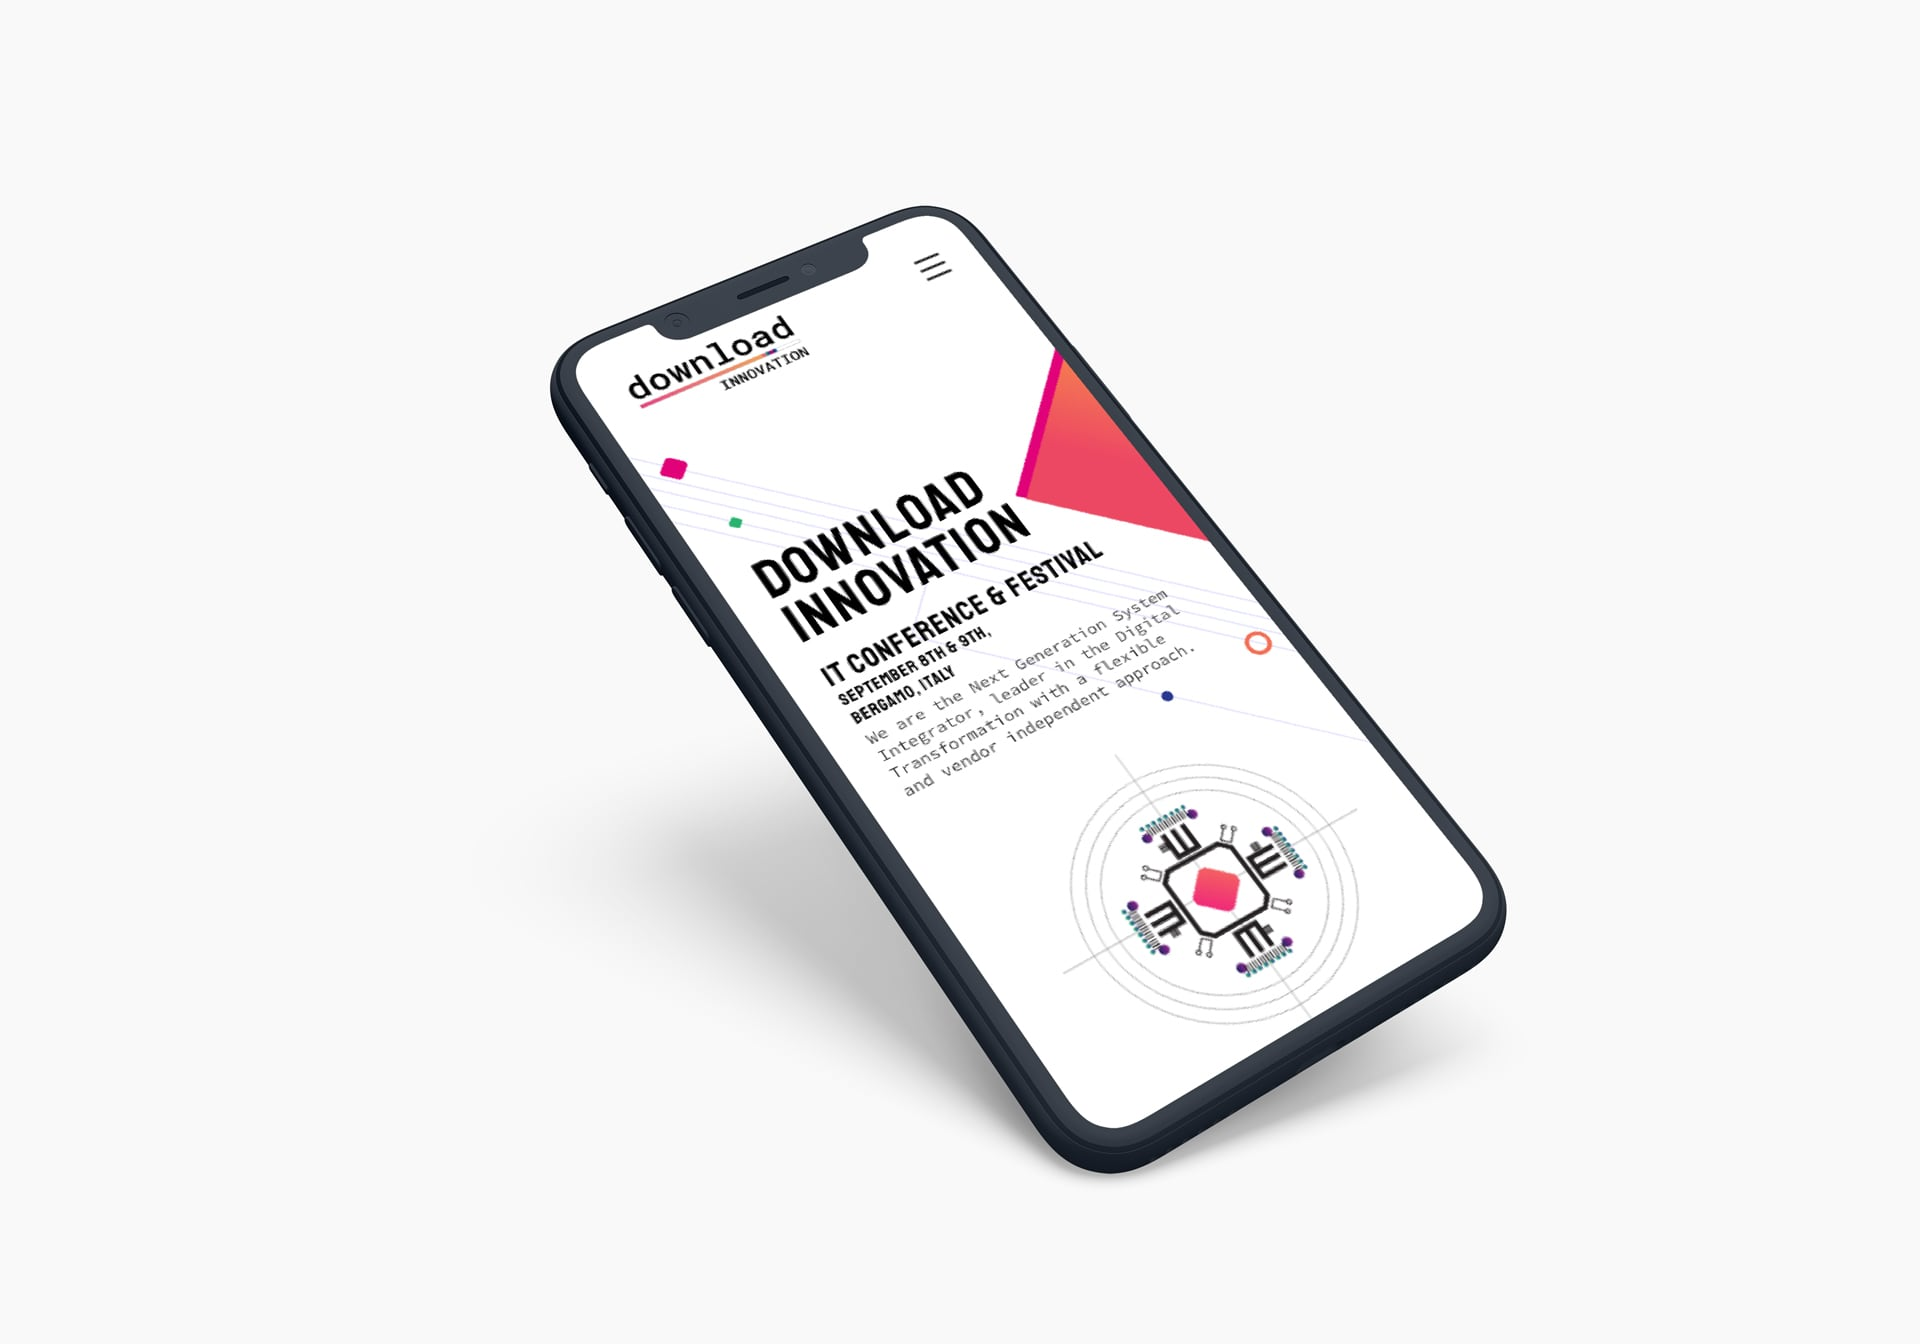 mobile phone showing the website design for the download innovation event 2019.